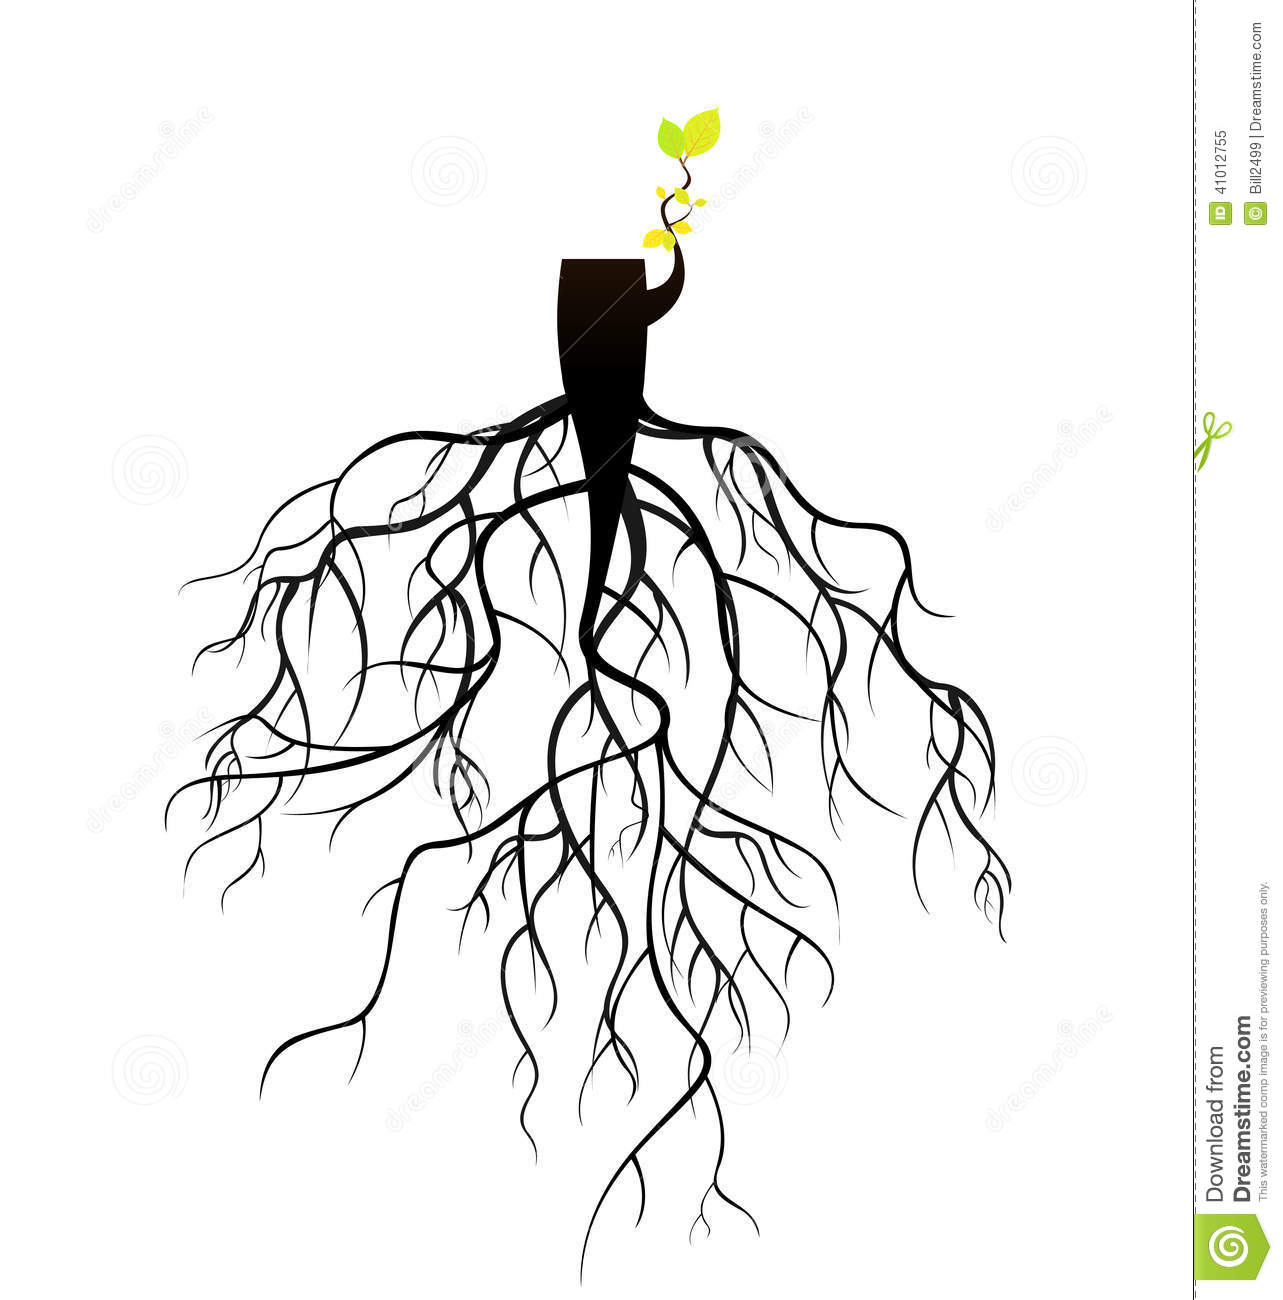 10 Ancient Celtic Symbols Explained furthermore Tattoo Design besides Boy Beth Whitaker 357315 furthermore 73577 together with Stock Illustration Plant Reborn Tree Stub Roots Used As Illustrations Image41012755. on tree of life